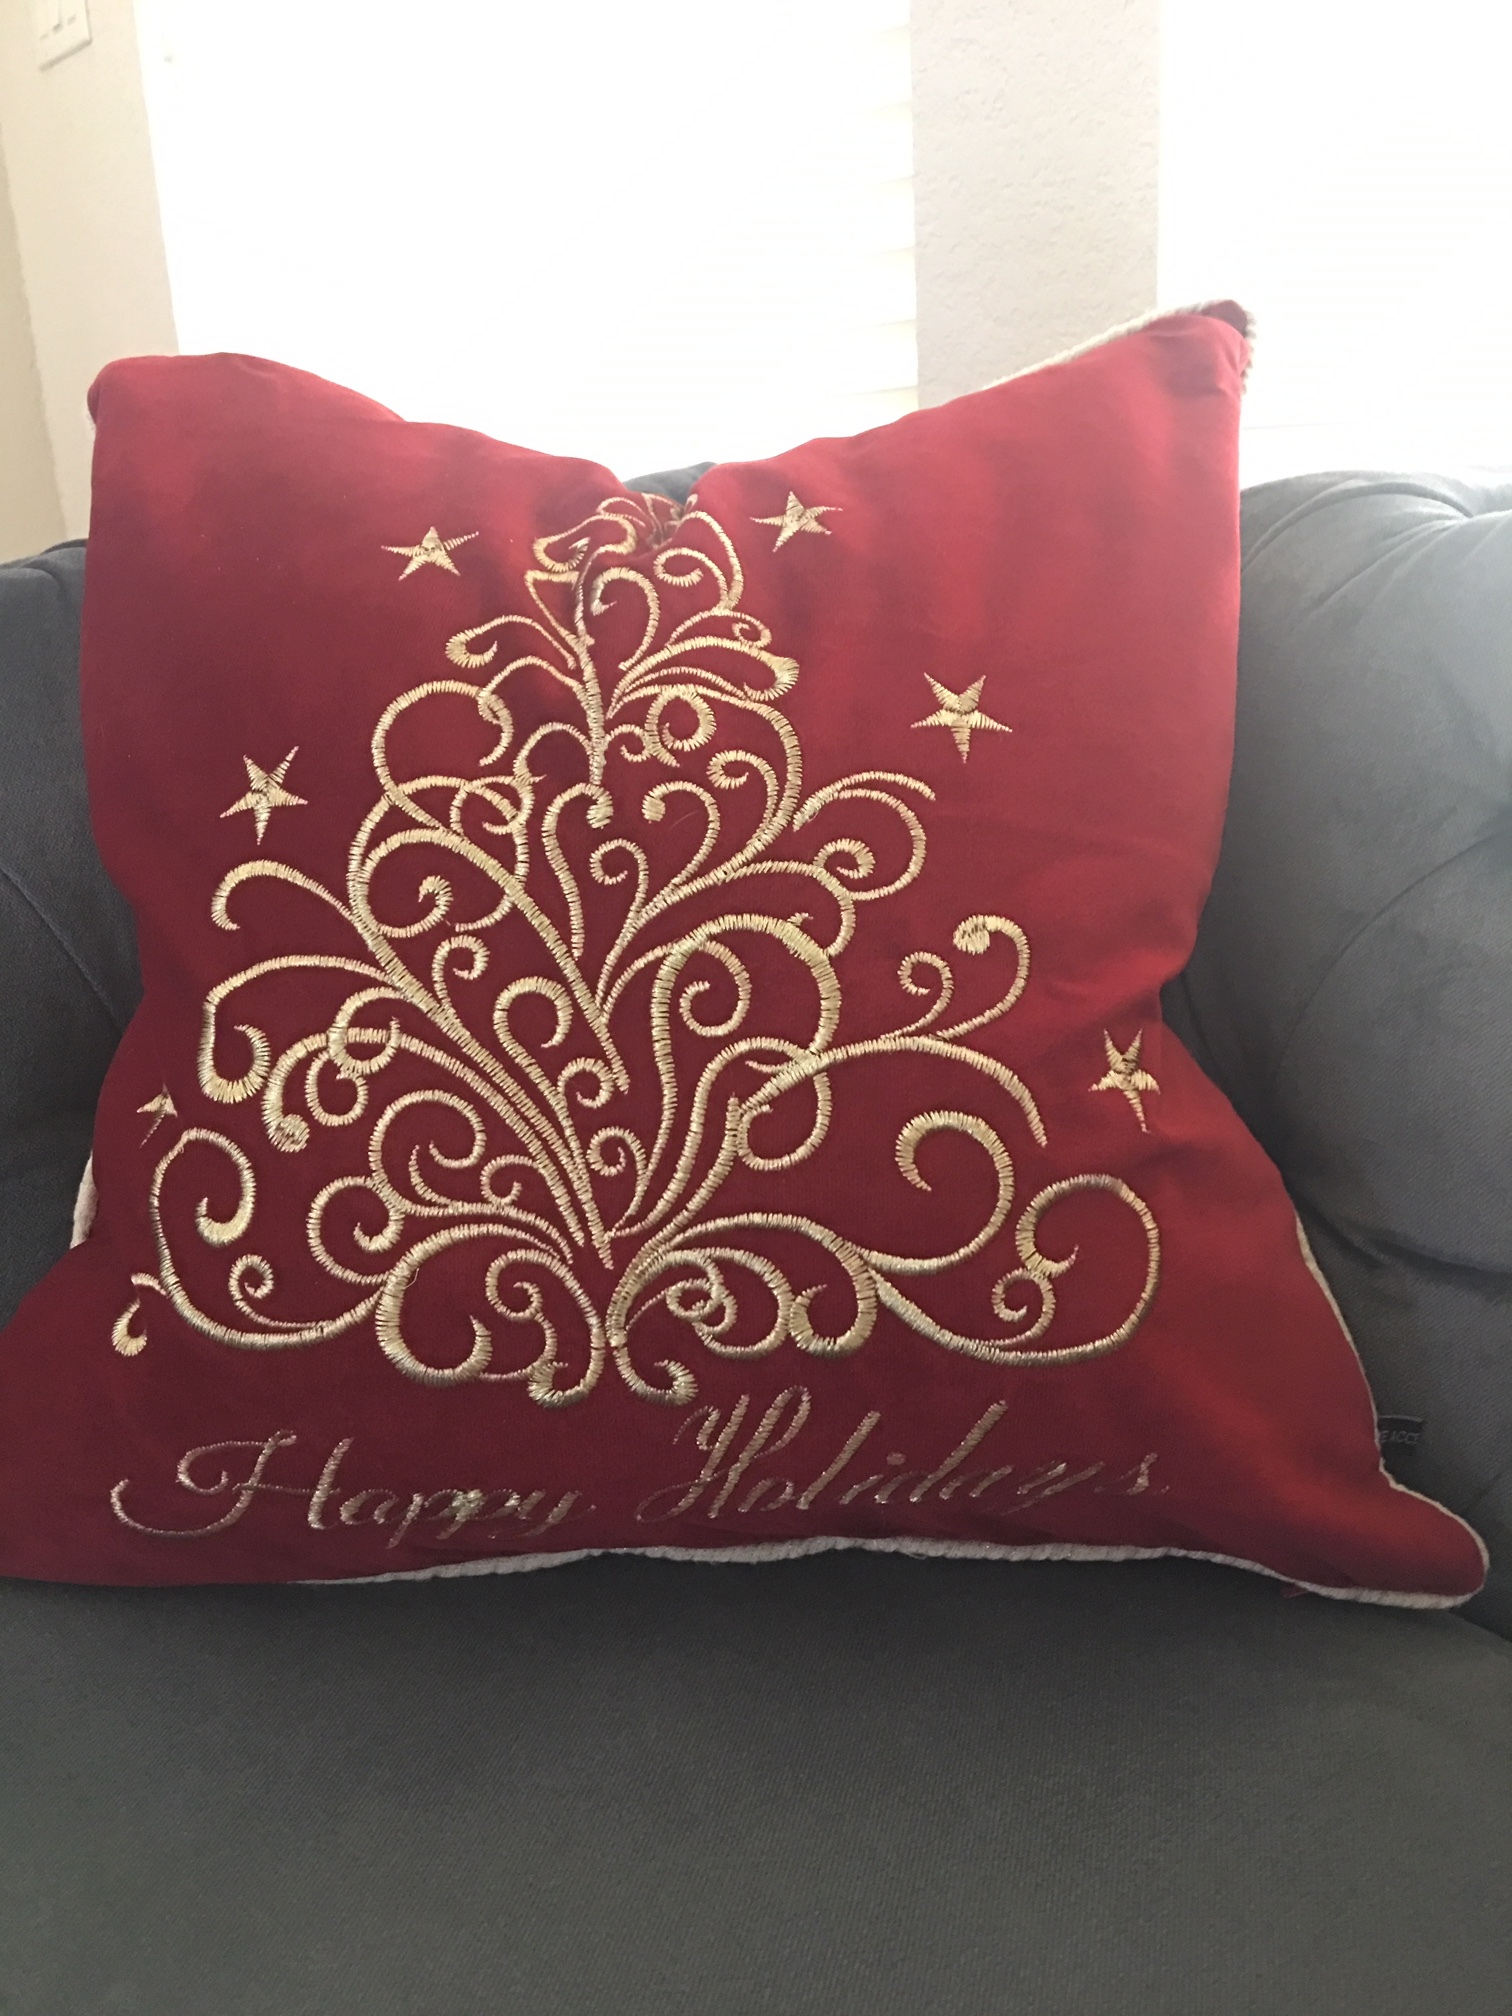 """- """"Happy Holidays"""" pillow covers"""